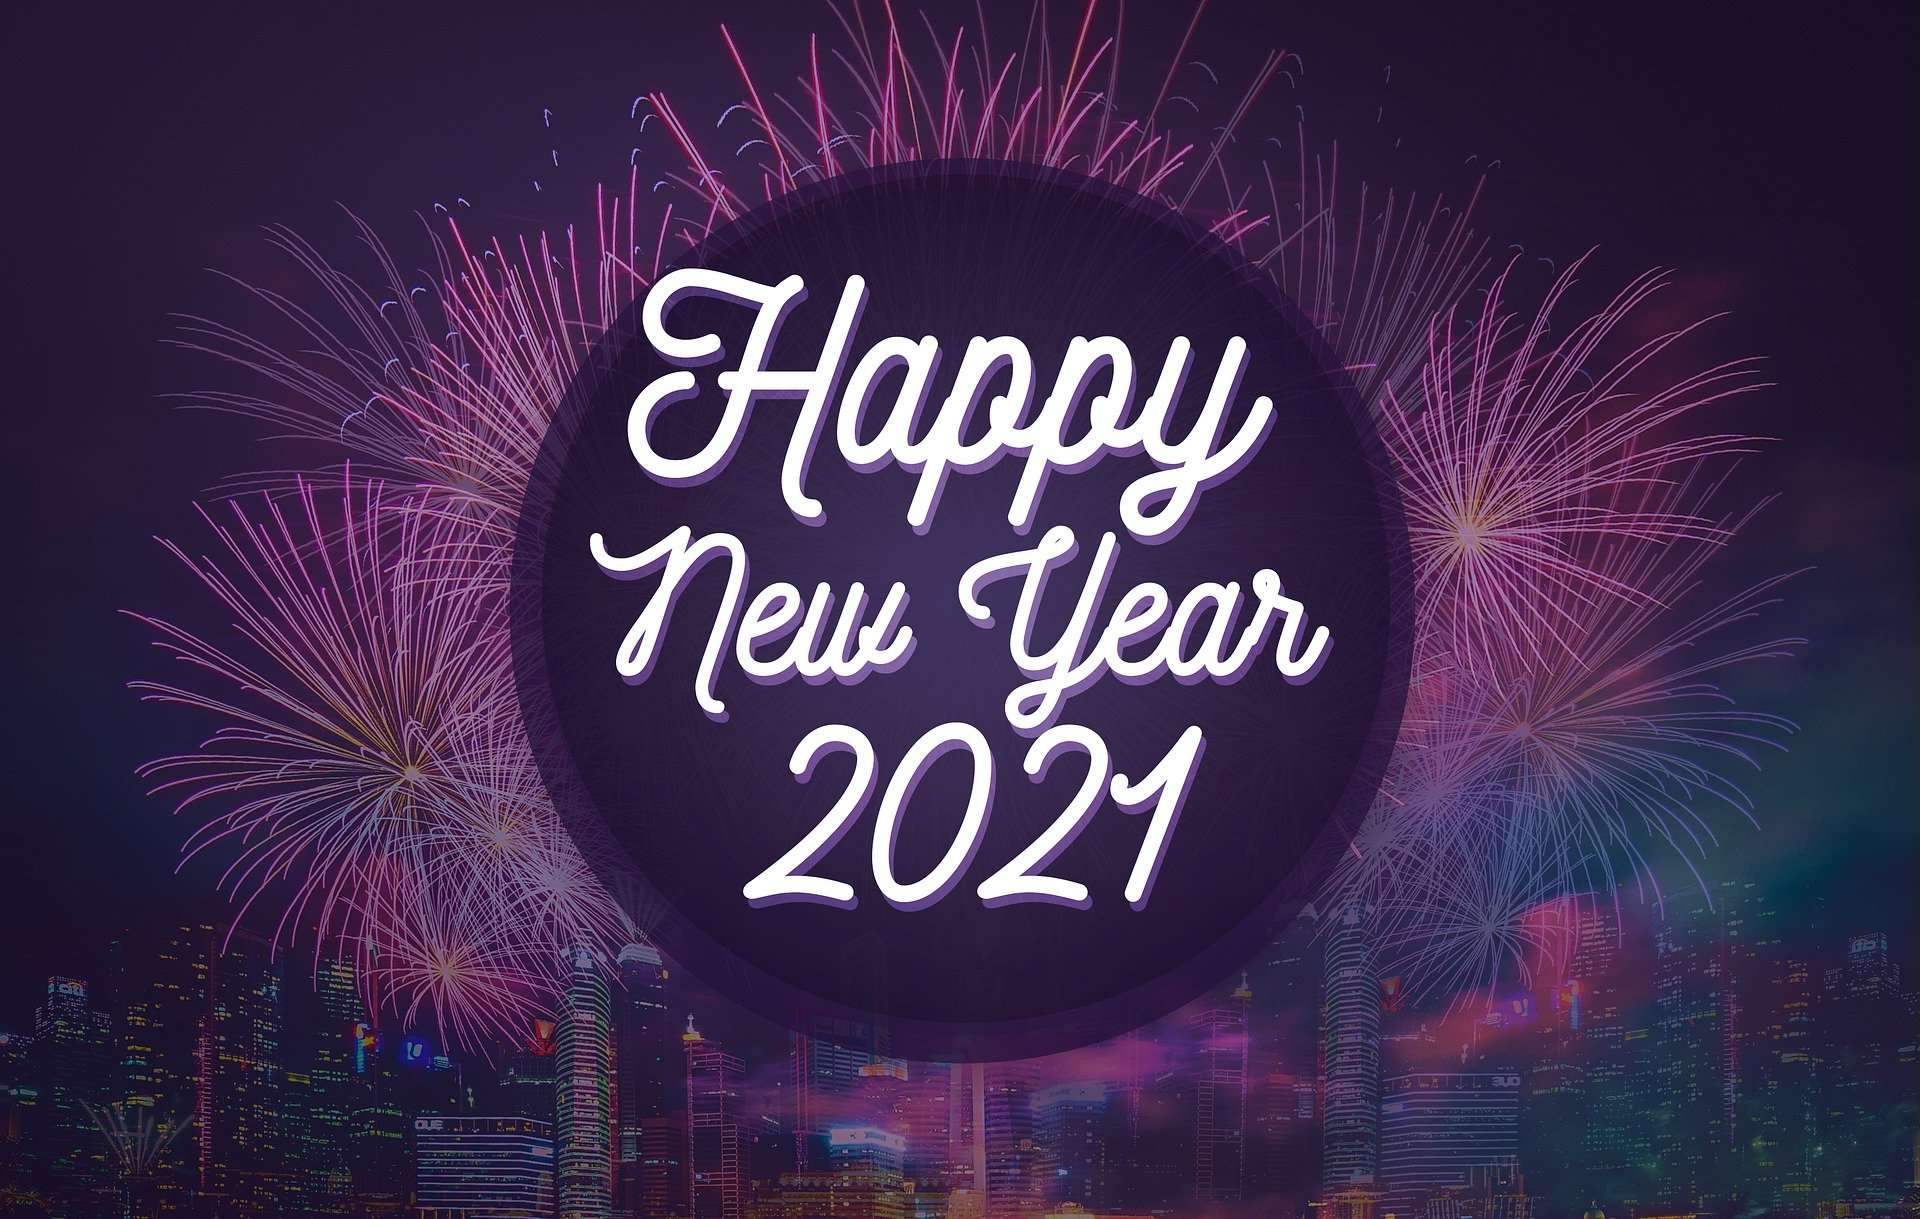 New Year's Eve - Happy New Year 2021 (1)